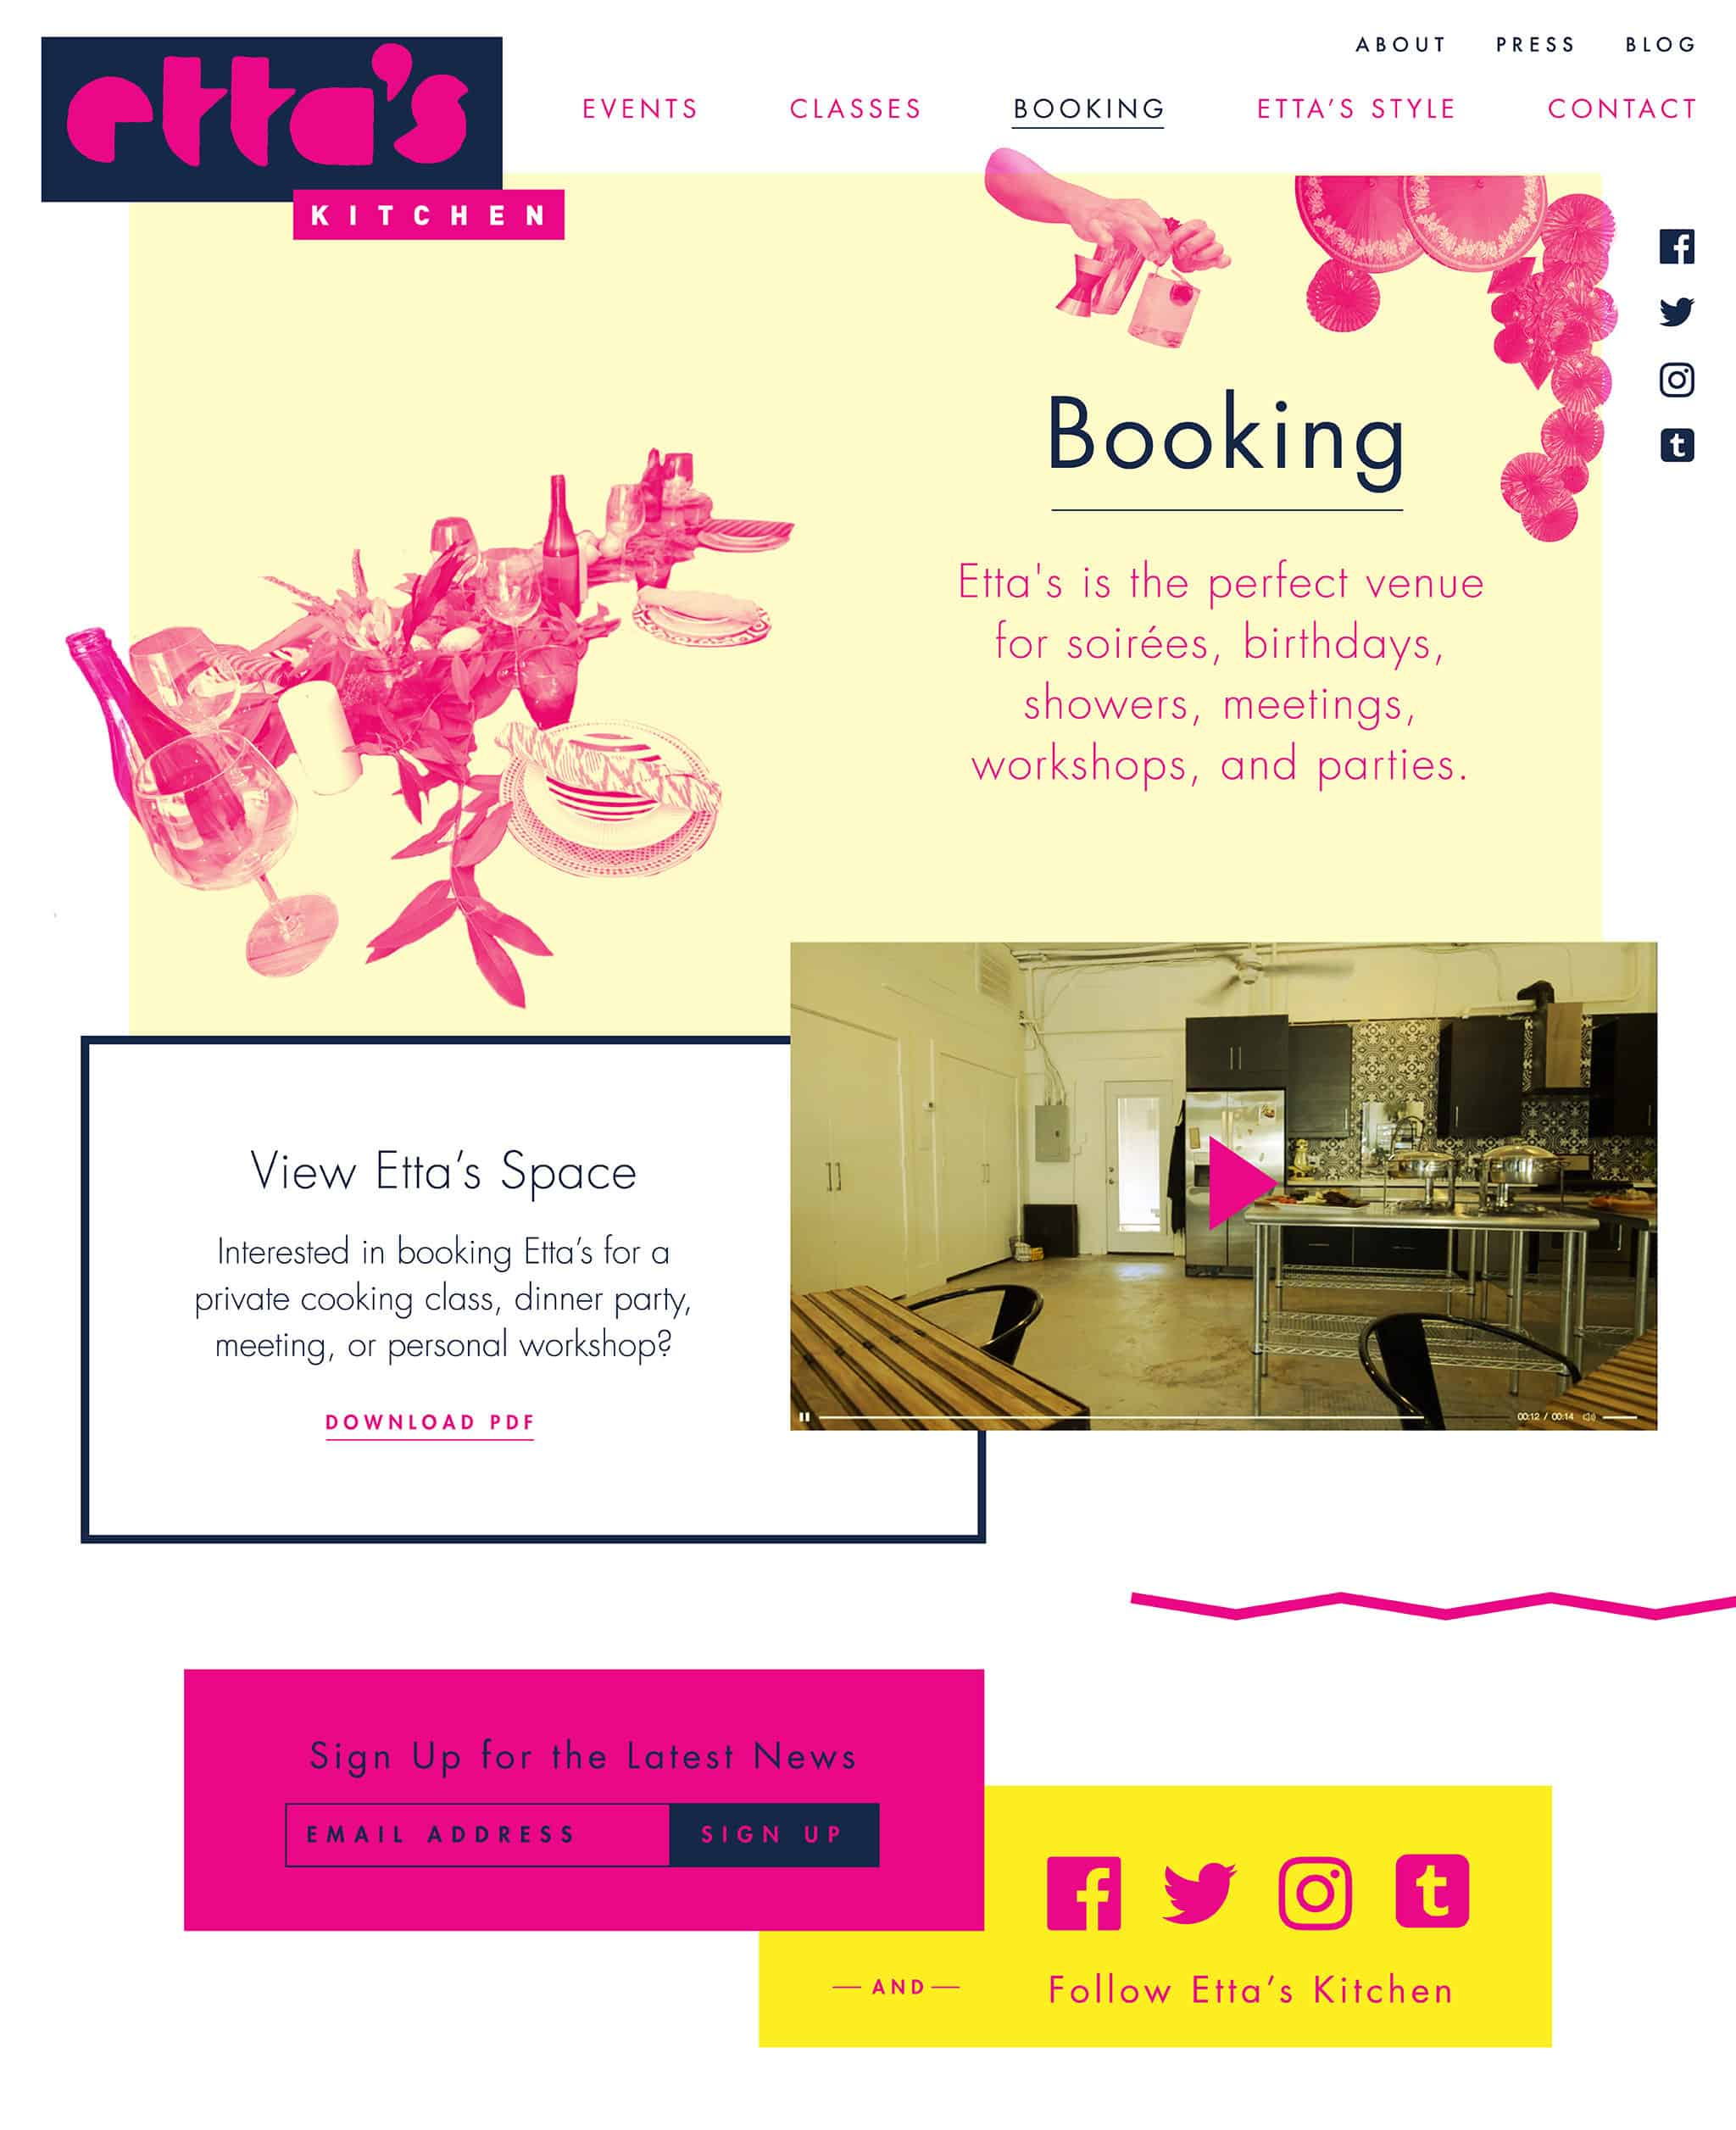 Website booking page for Etta's Kitchen | Designed by Field of Study: A branding and graphic design consultancy | Houston TX | Jennifer Blanco & John Earles